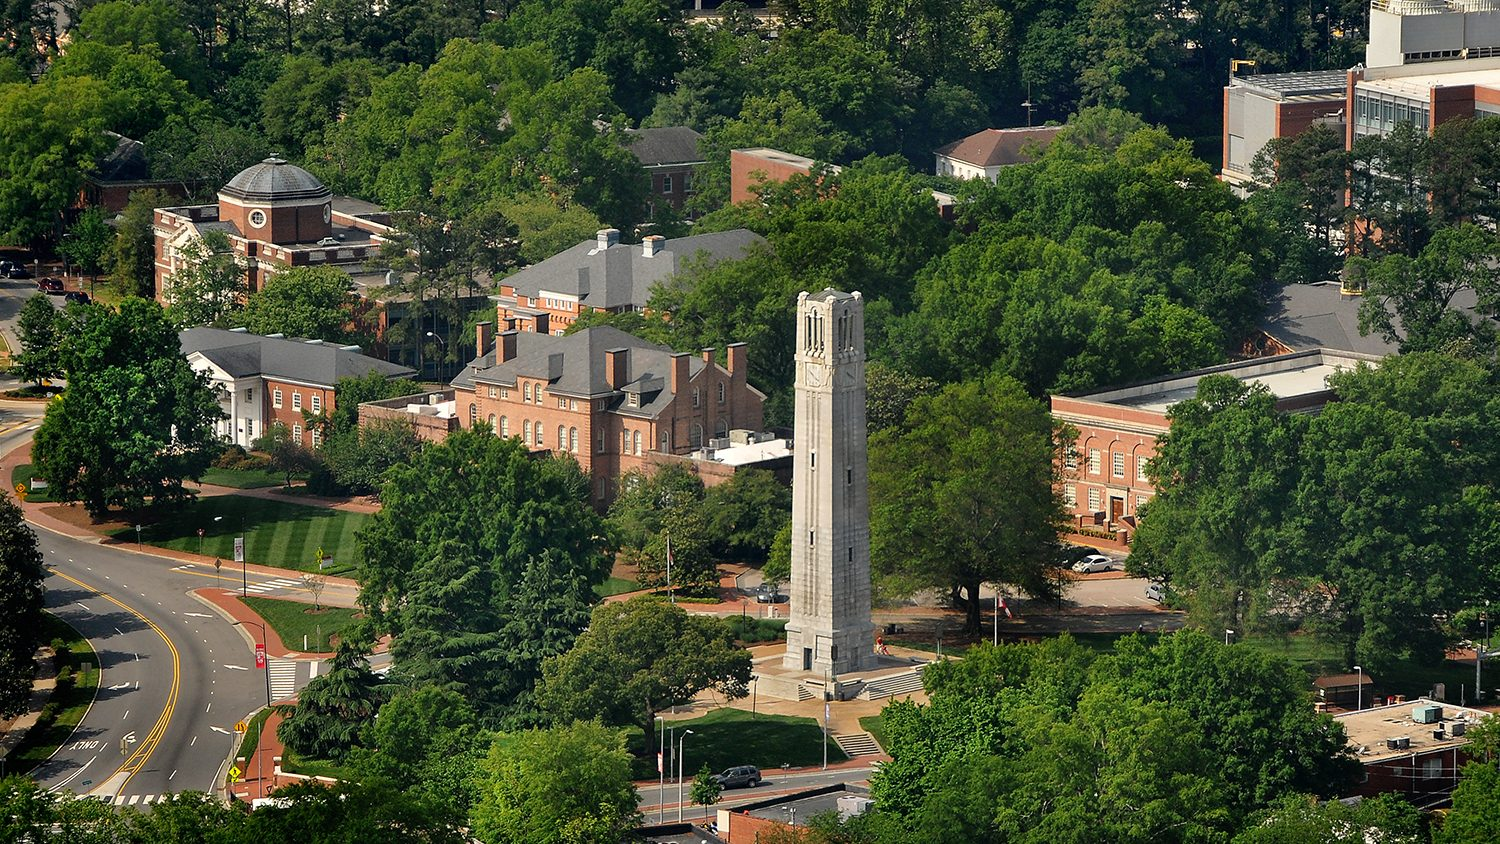 Aerial of Memorial Belltower and surrounding buildings on campus.